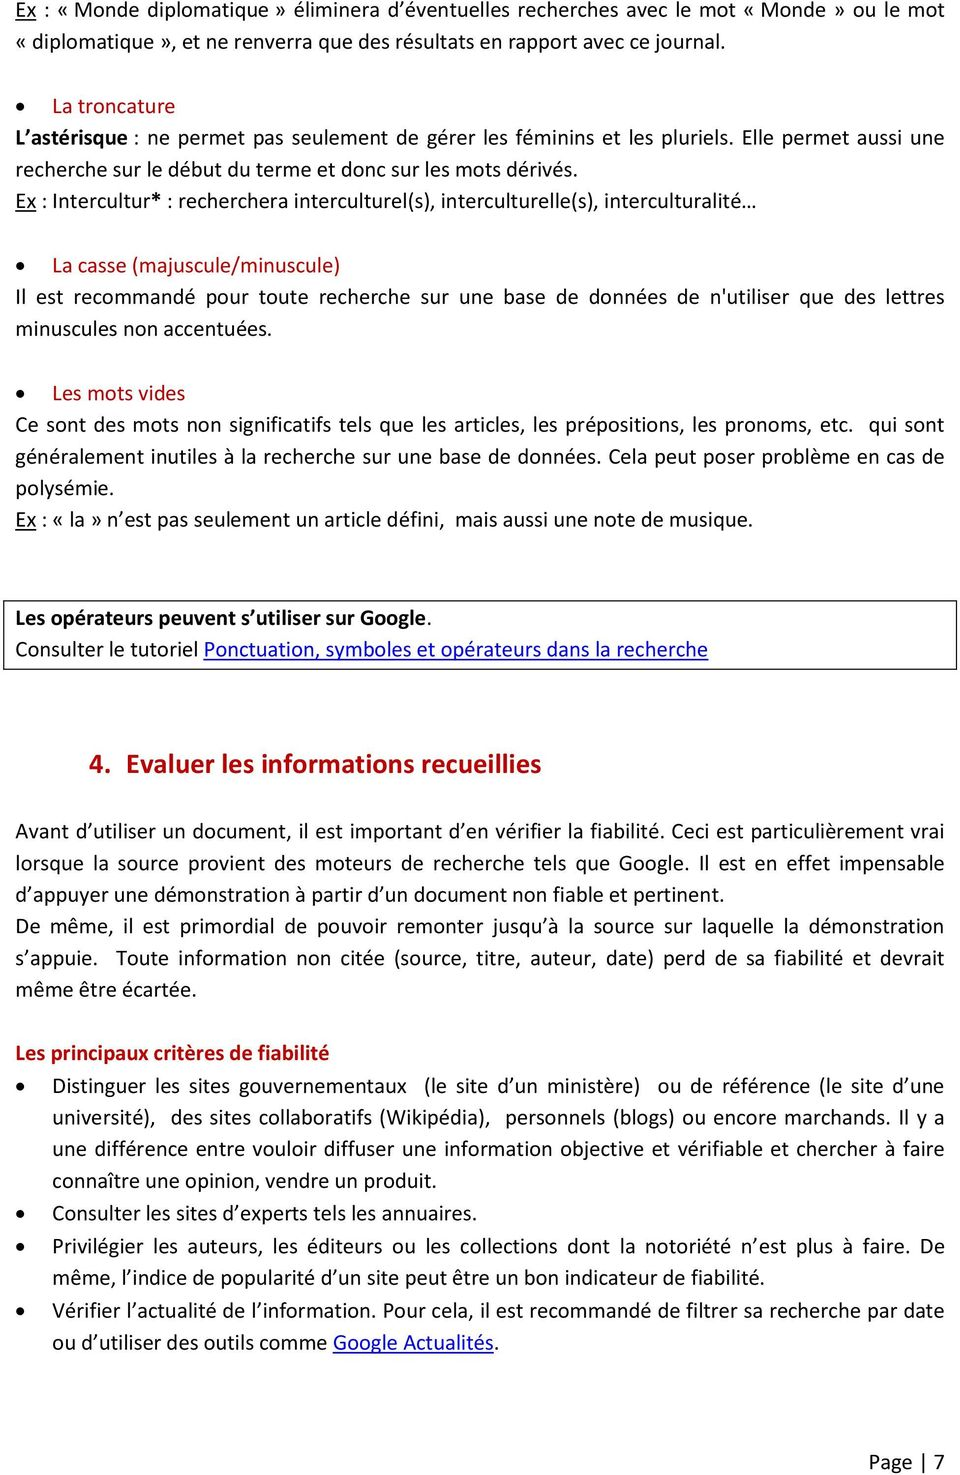 Ex : Intercultur* : recherchera interculturel(s), interculturelle(s), interculturalité La casse (majuscule/minuscule) Il est recommandé pour toute recherche sur une base de données de n'utiliser que